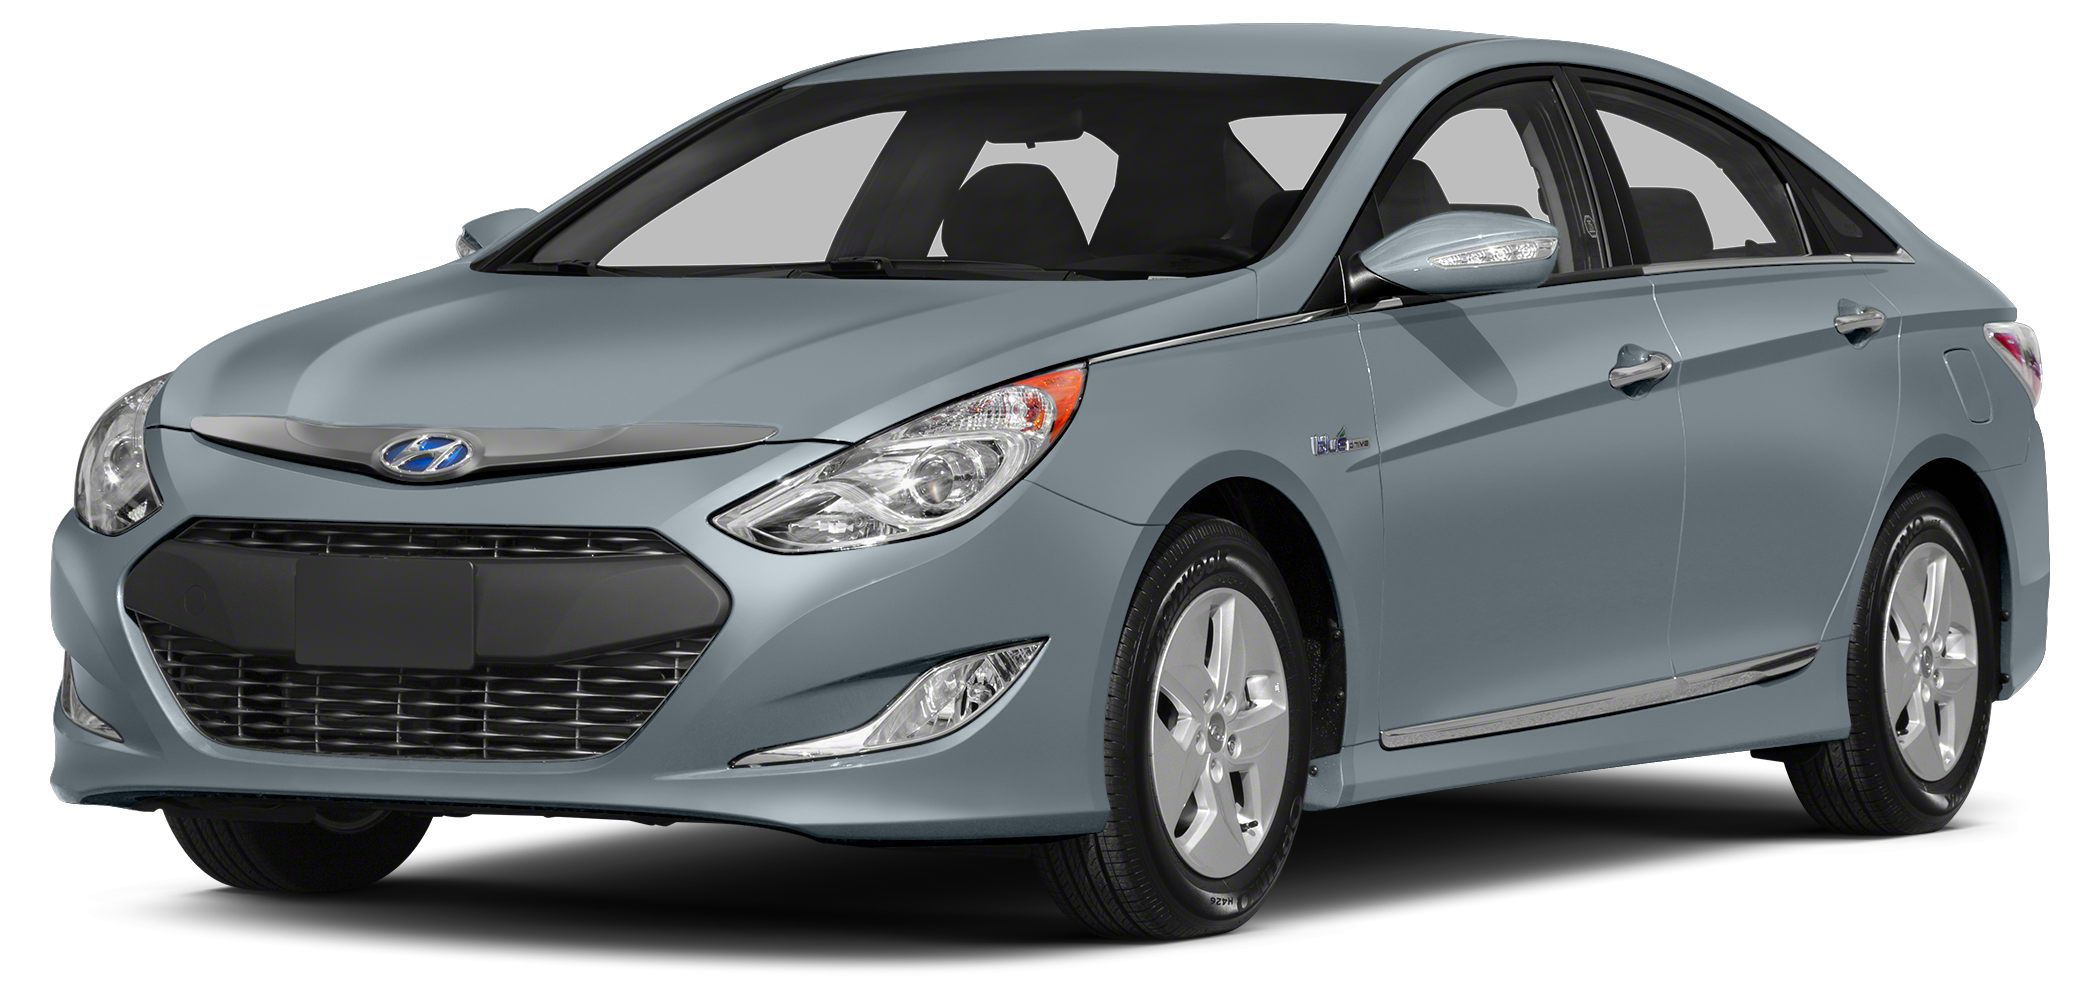 2011 Hyundai Sonata Hybrid Base Lifetime Engine Warranty at NO CHARGE on all pre-owned vehicles Co